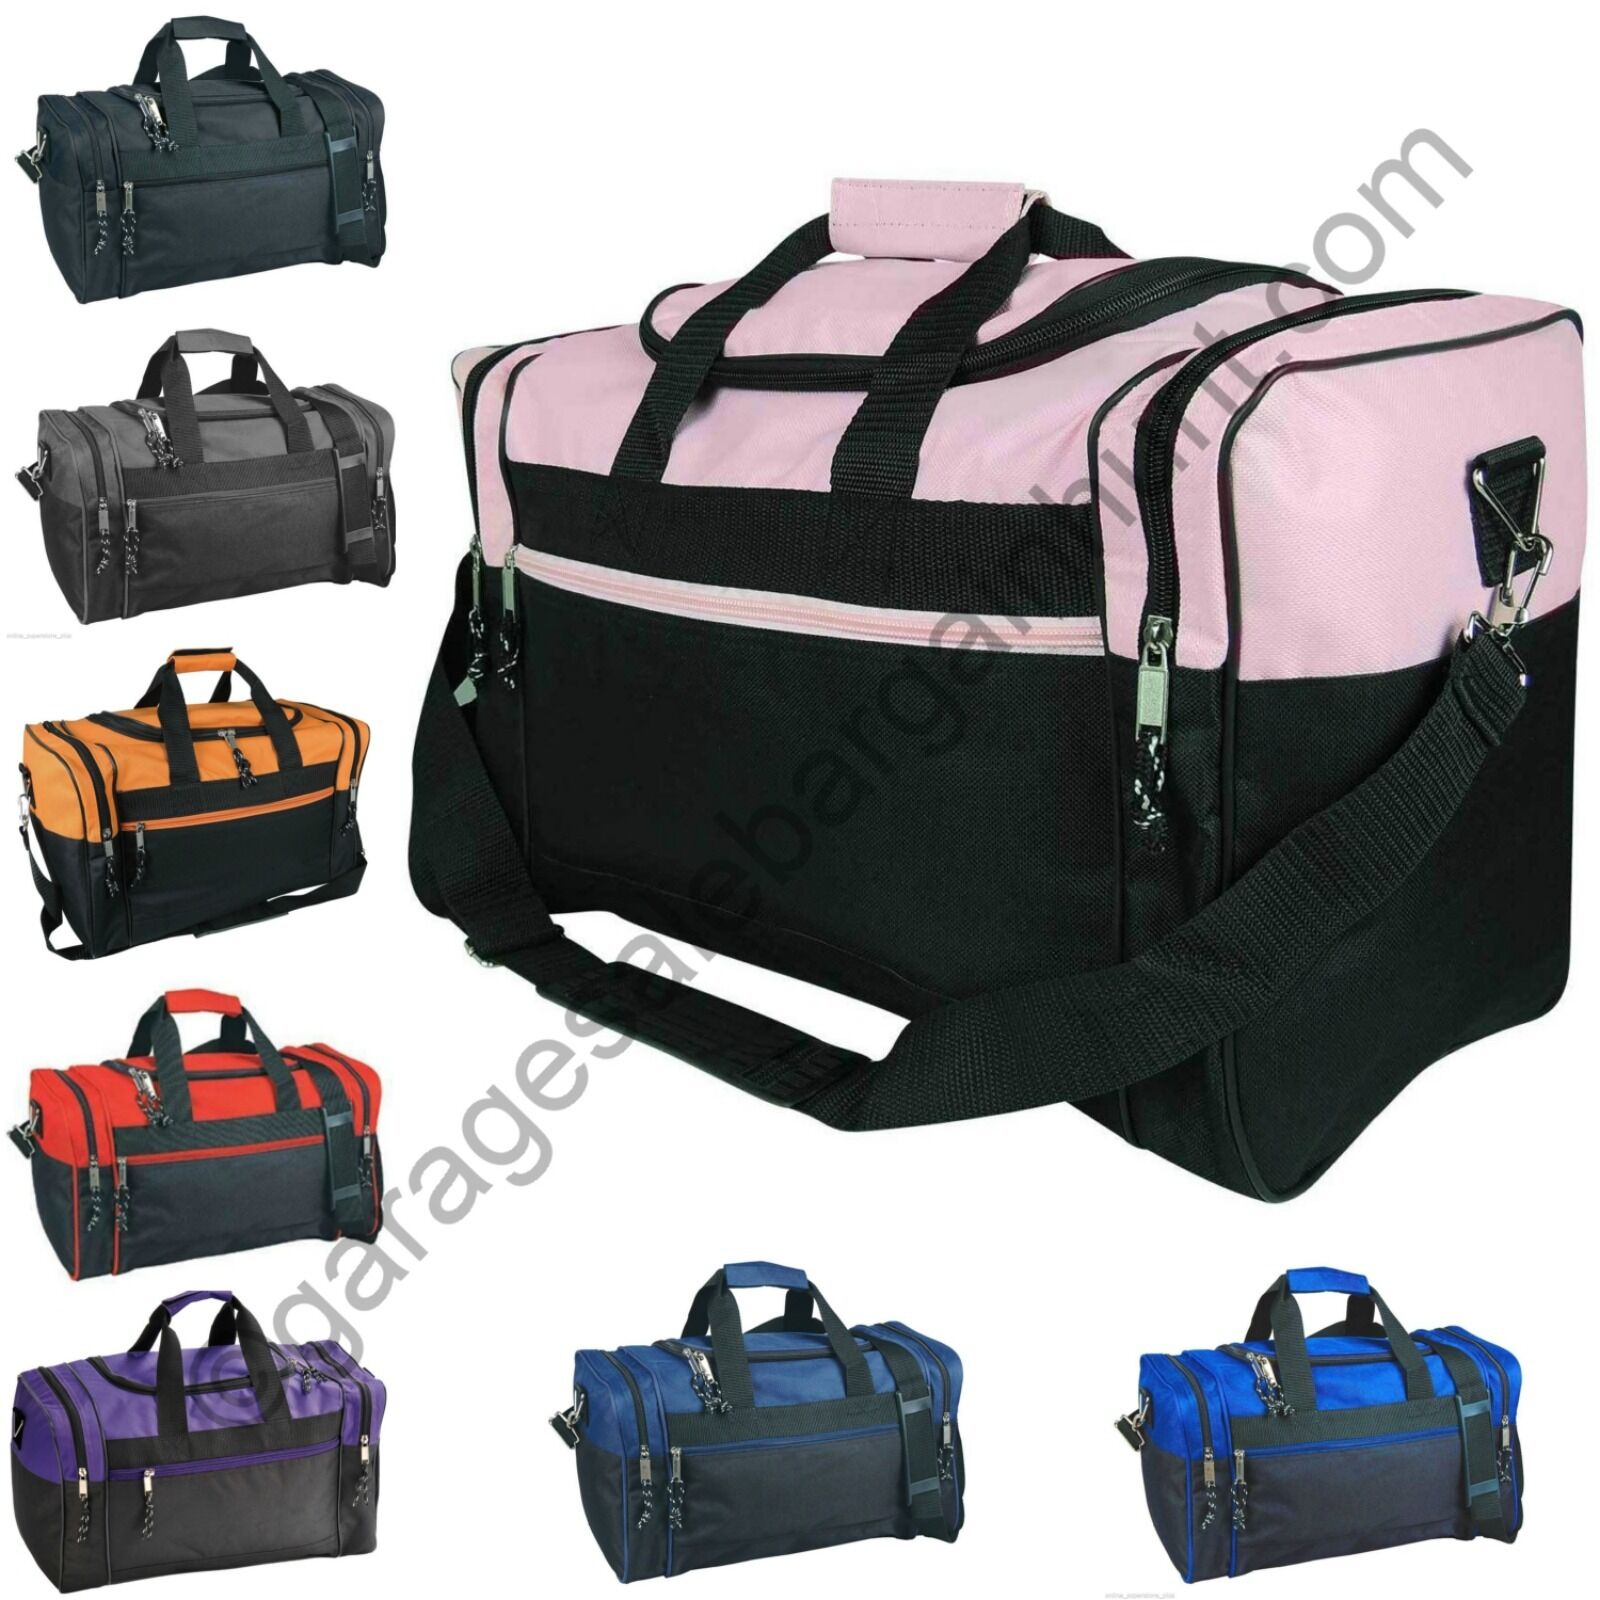 e59feb838c05 Duffle Duffel Bag Bags Carry-on Travel Sports Luggage Shoulder Strap ...